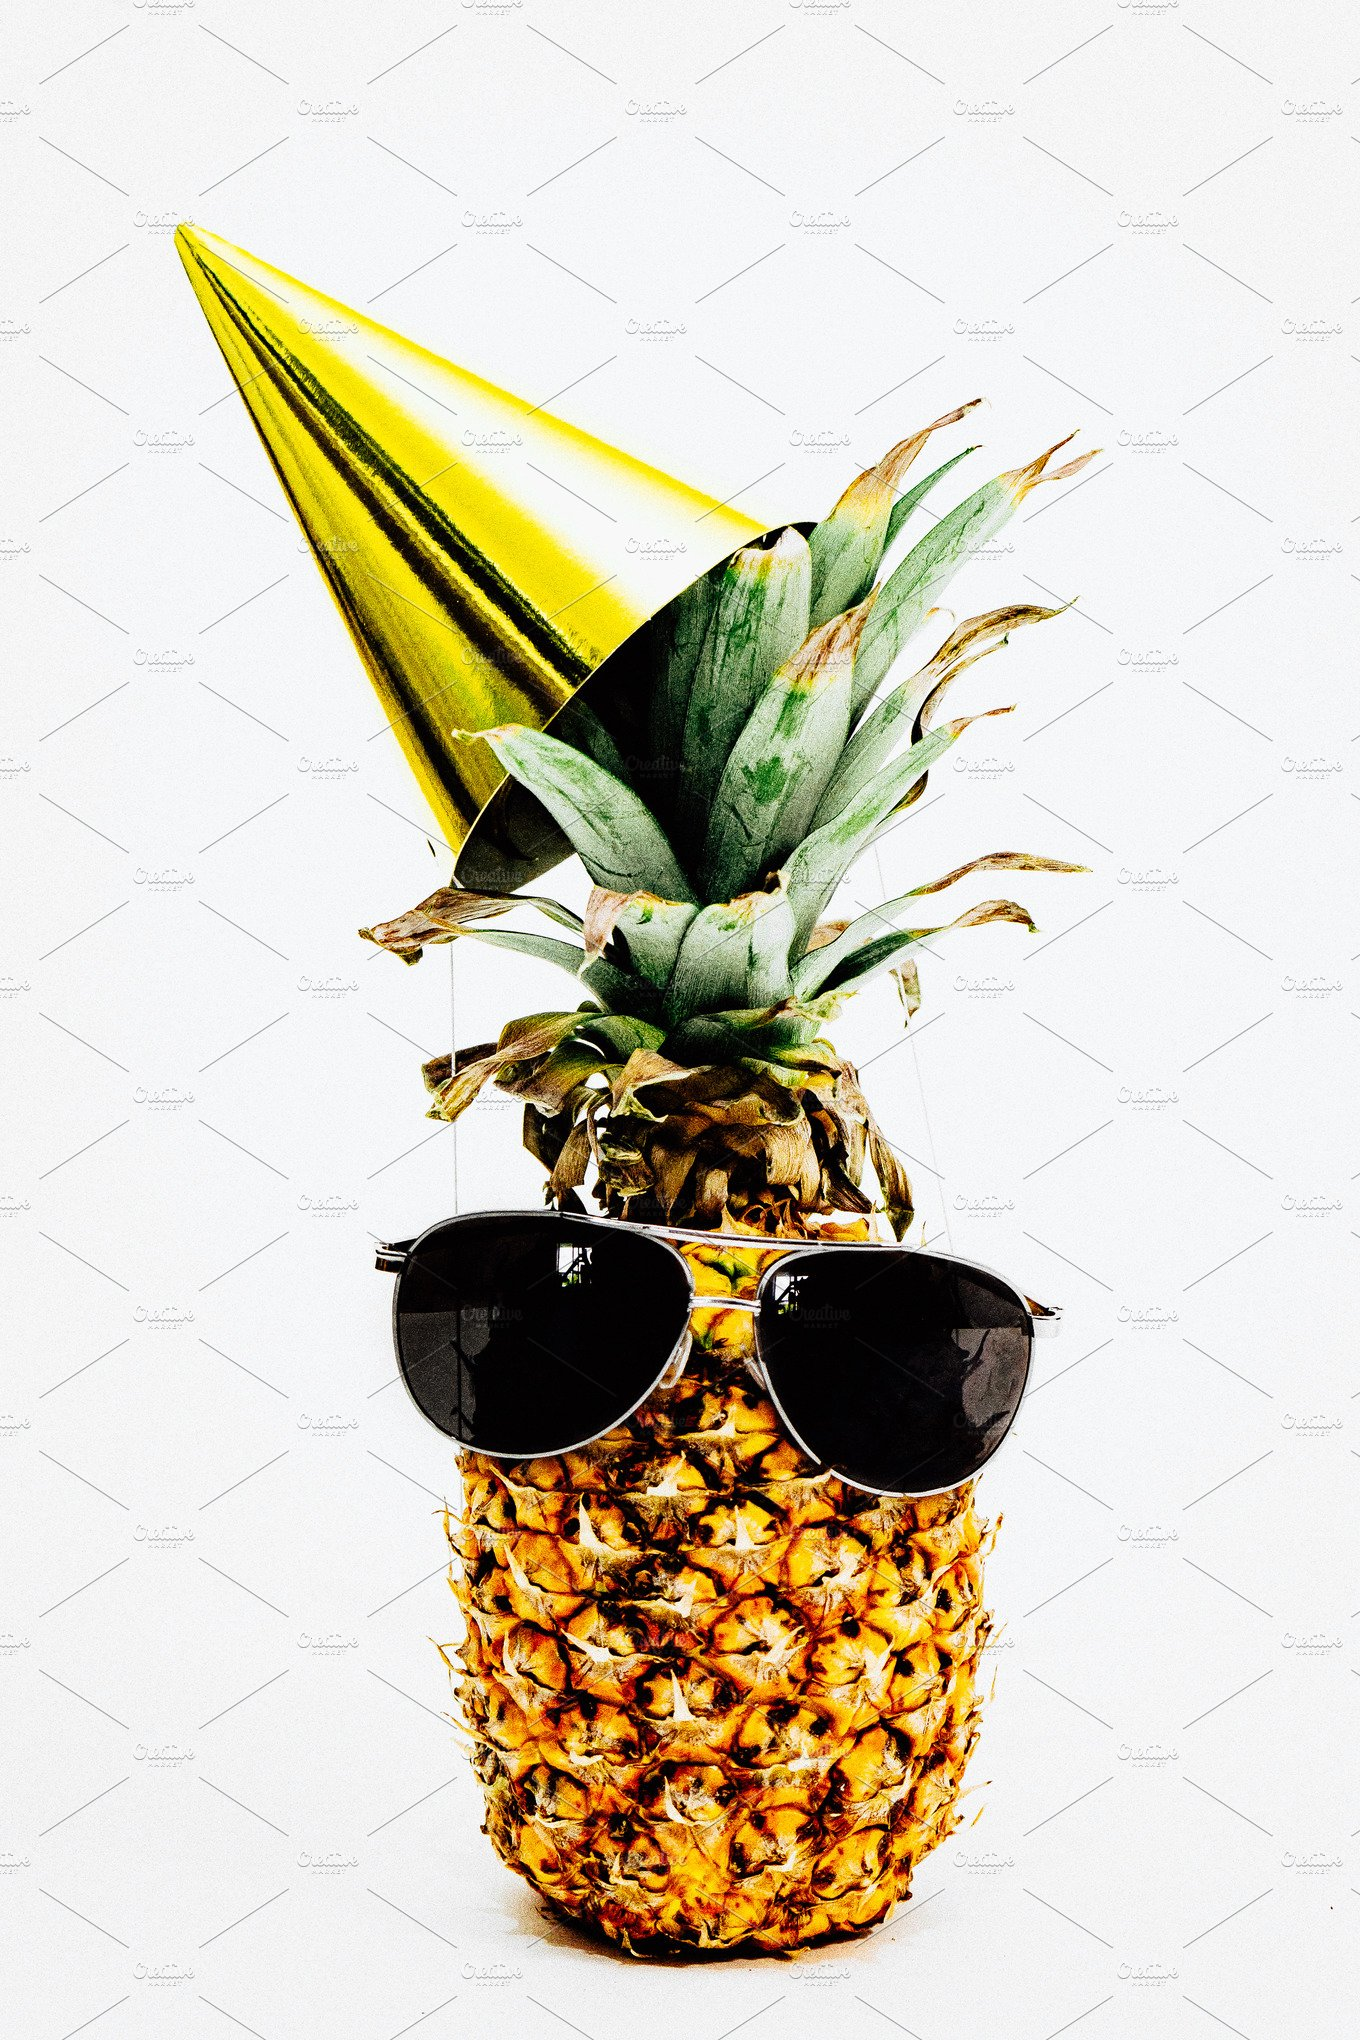 Pineapple Happy Birthday Arts Amp Entertainment Photos